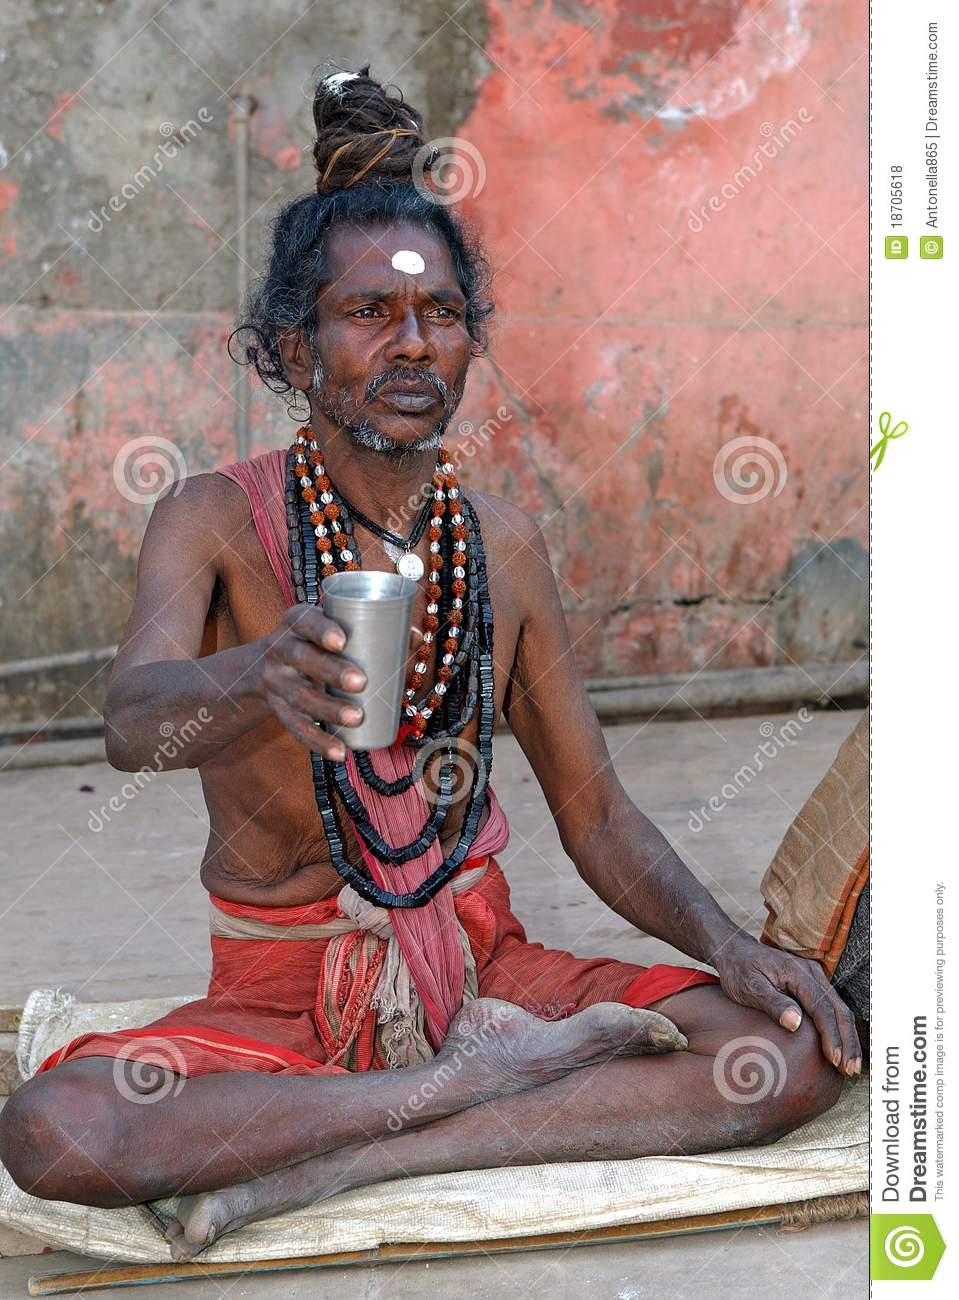 Indian Sadhu Editorial Stock Photo Image Of India Ochre